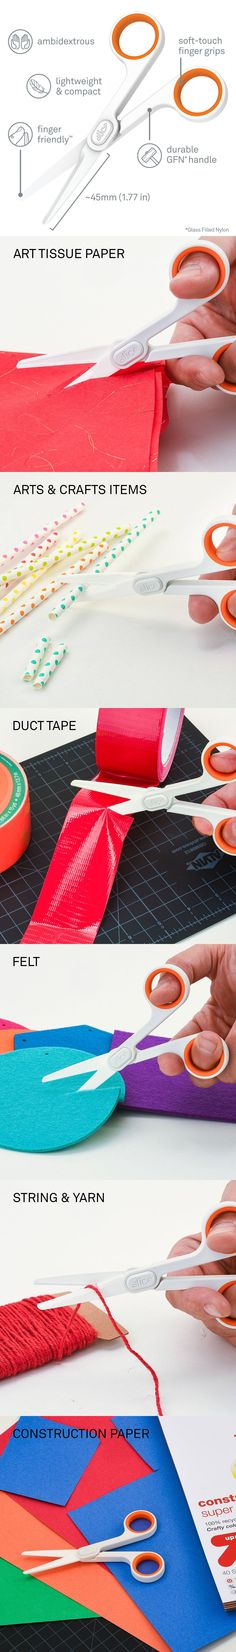 Slice's Ceramic Scissors are next-generation safety tools for adults and children alike. With soft-touch finger grips and an ambidextrous design, these lightweight and compact scissors feature Slice's patented finger-friendly ceramic safety blades. Sharp enough to cut paper and fabric effectively, the Ceramic Scissor blades never rust, are non-magnetic and non-conductive, and stay sharp up to 10x longer than steel.